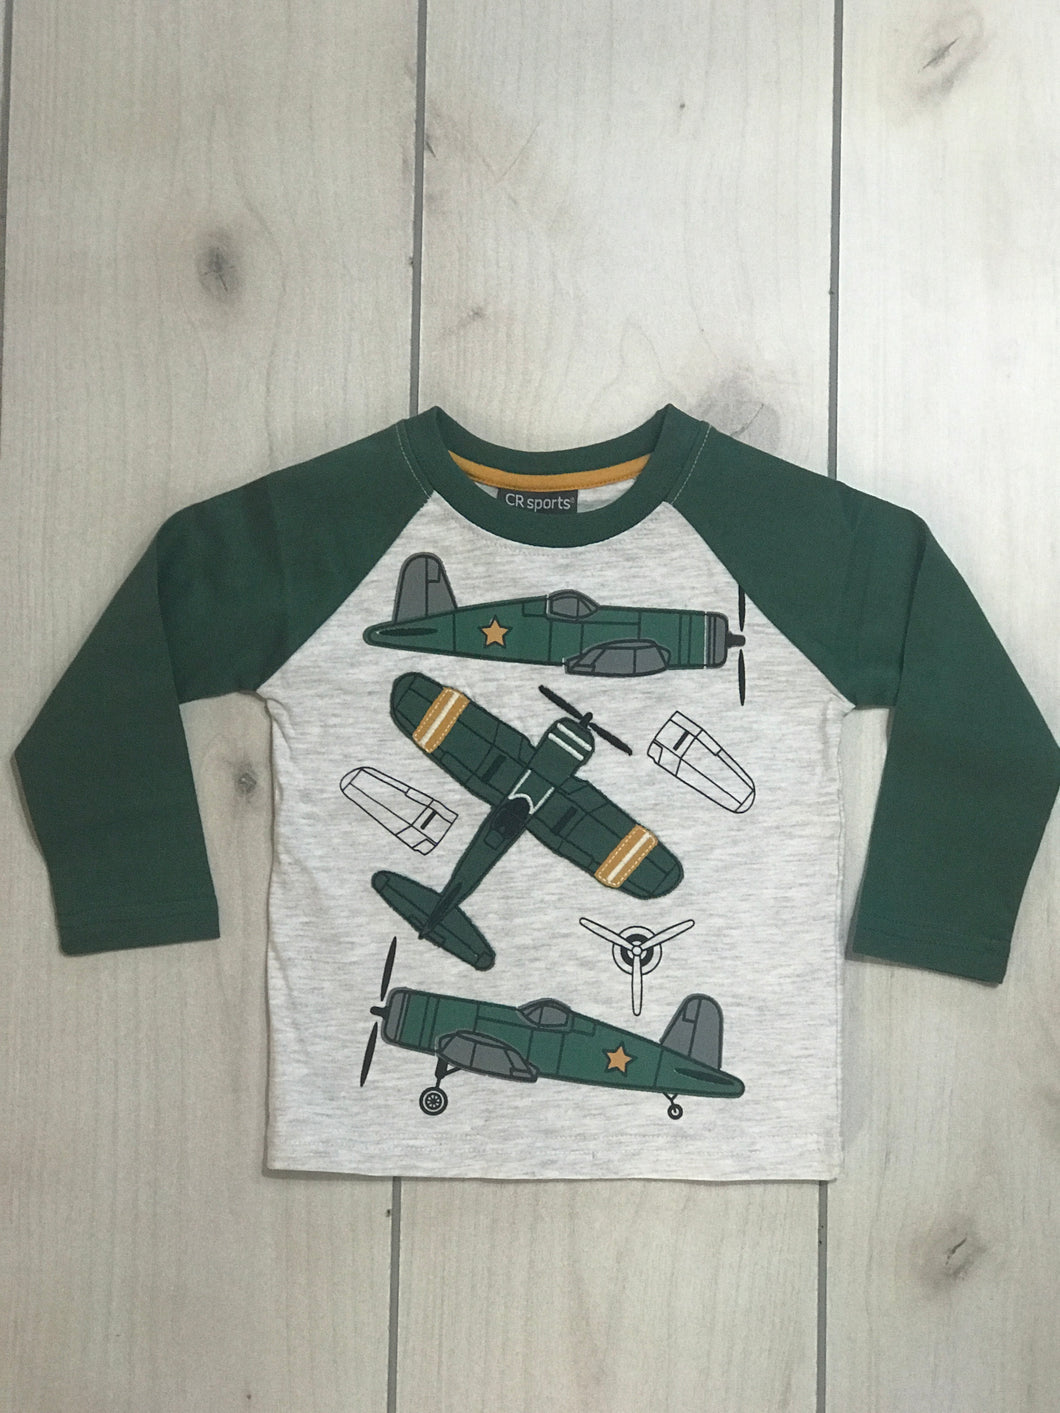 CR Sports Military Airplane Raglan - Adalynn's Attic